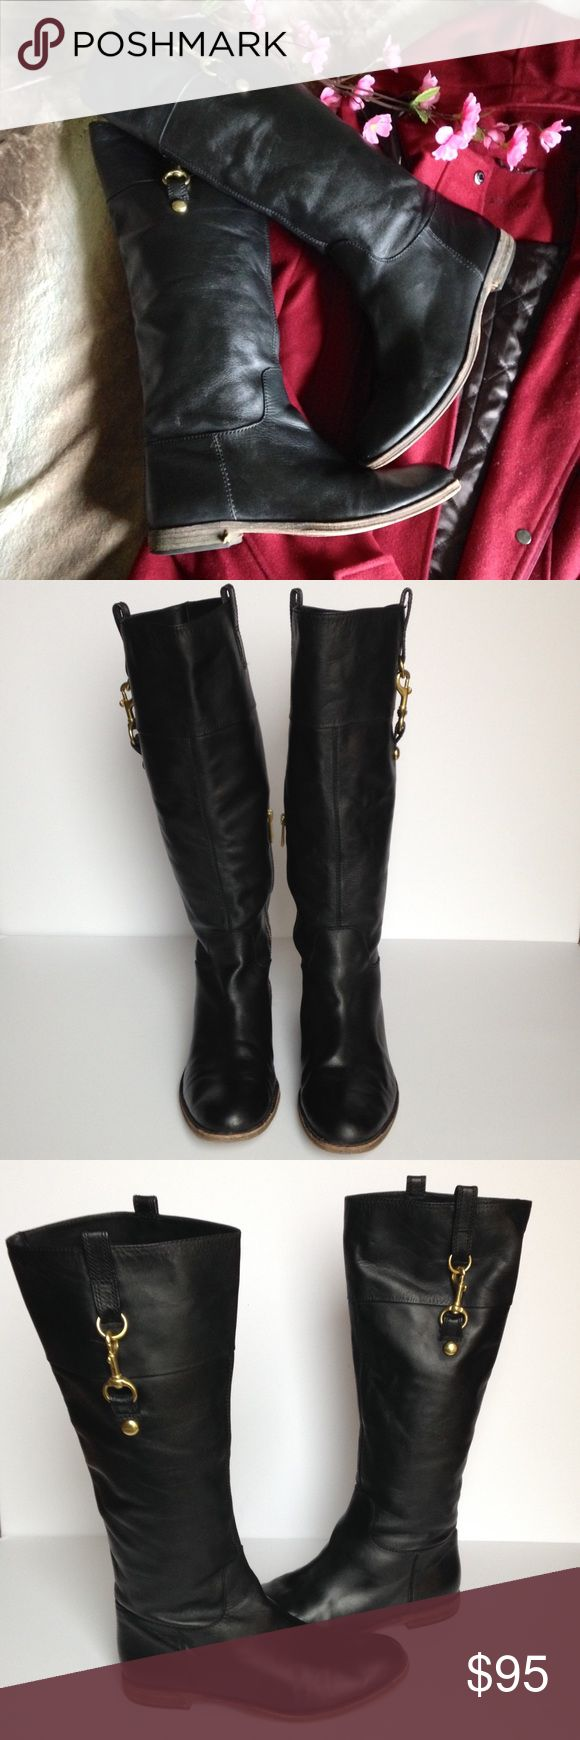 Coach Martta Soft Leather Riding Boots With the Coach Martta boot, the timeless riding boot gets an exquisite update in luxuriously supple artisanal leather. The refined silhouette looks tall and elegant with a minimal heel and leather pull-tabs, accented by a gleaming dogleash accent. --- Super cute boots in good pre loved condition, shows some wear as pictured, have been properly cleaned and shined. Size 8.5. I happily entertain reasonable offers 😊🌸 Coach Shoes Winter & Rain Boots